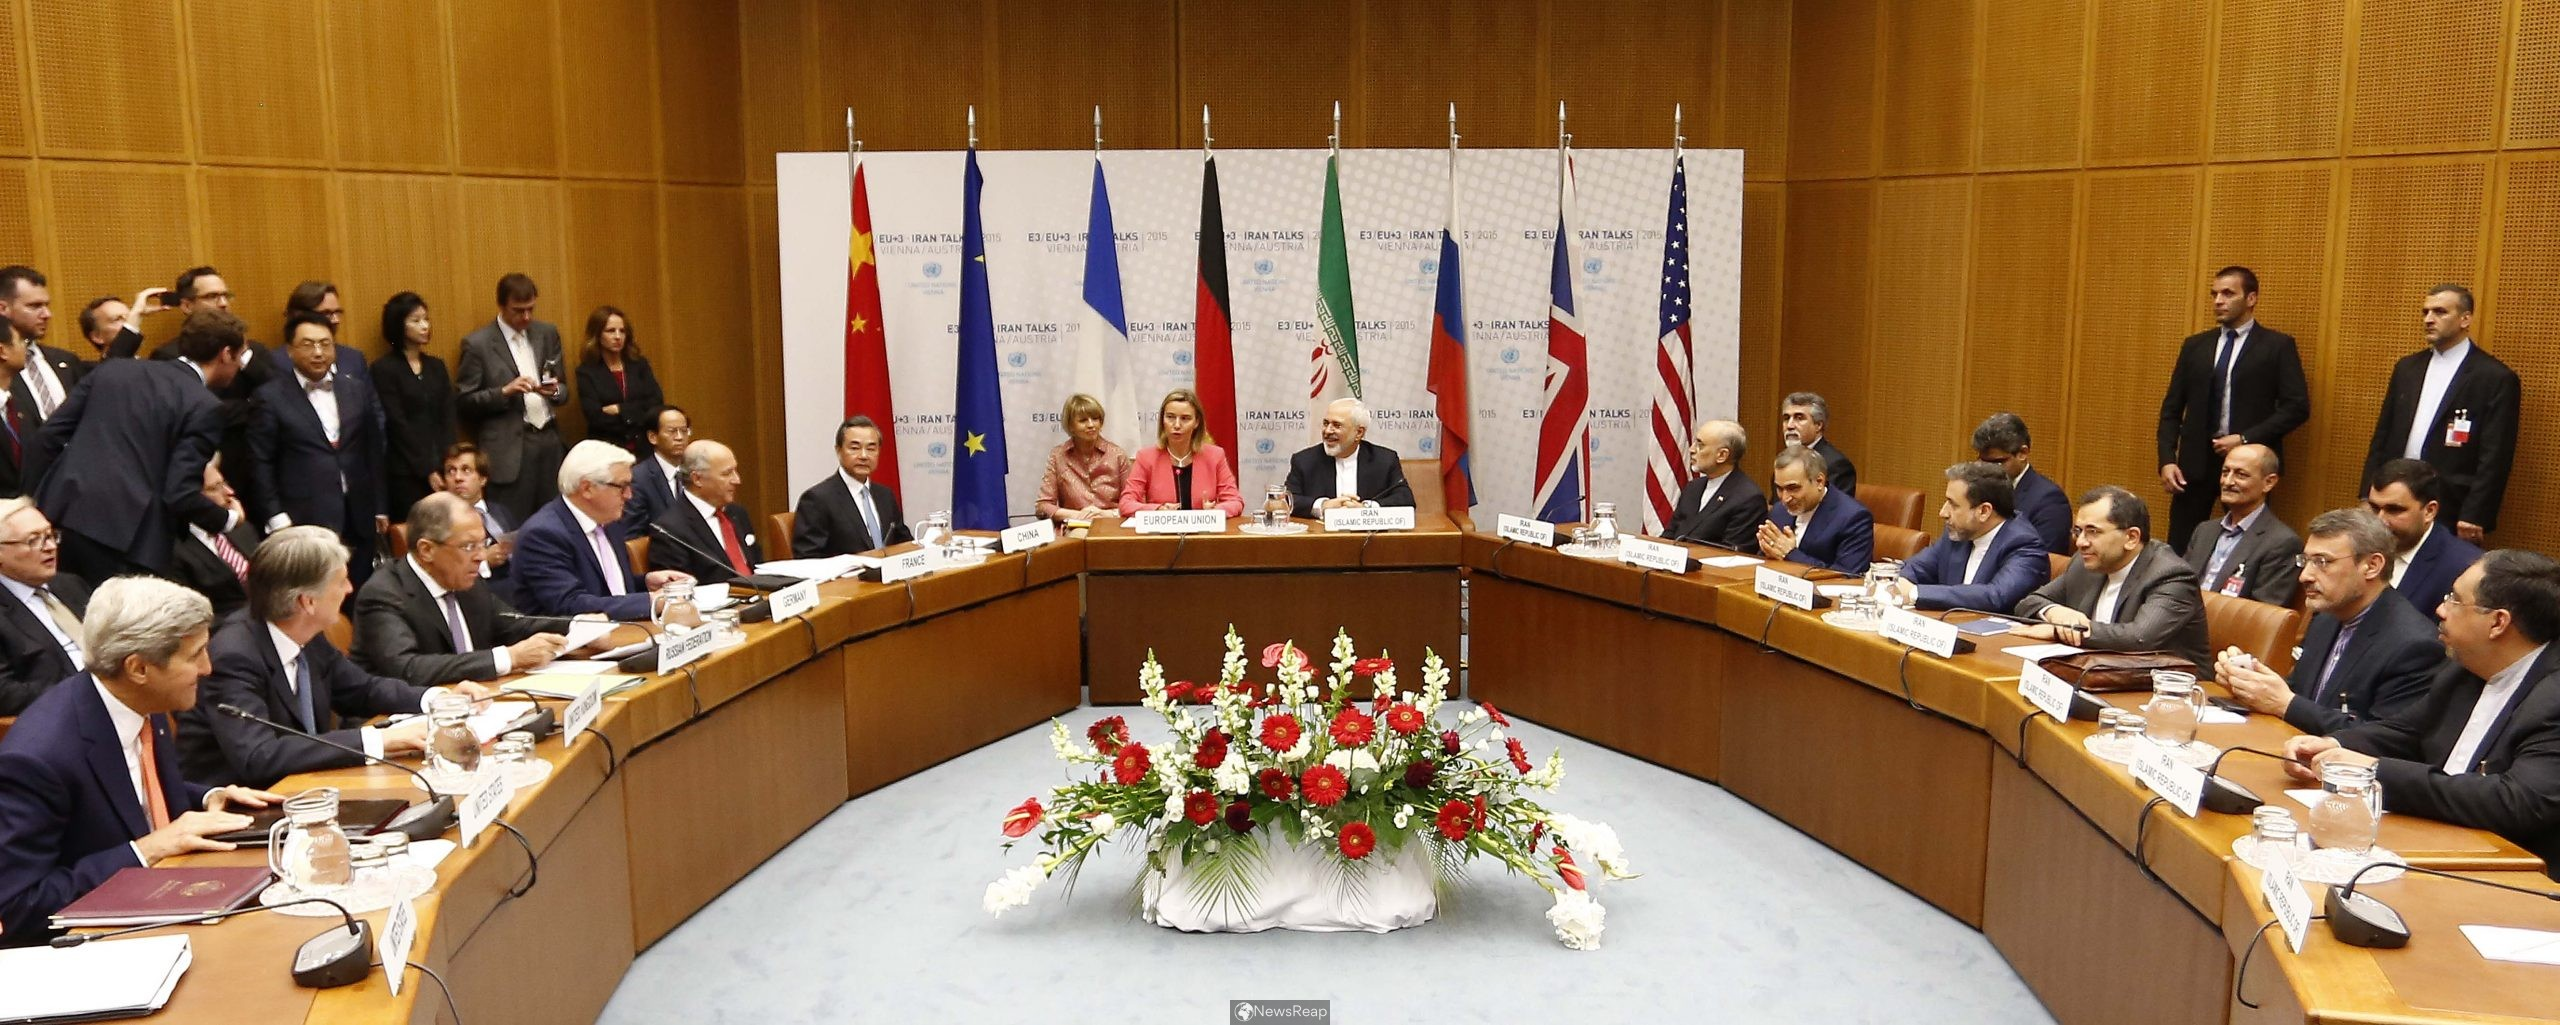 Iran's Zarif to offer constructive plan amid hopes of informal nuclear talks